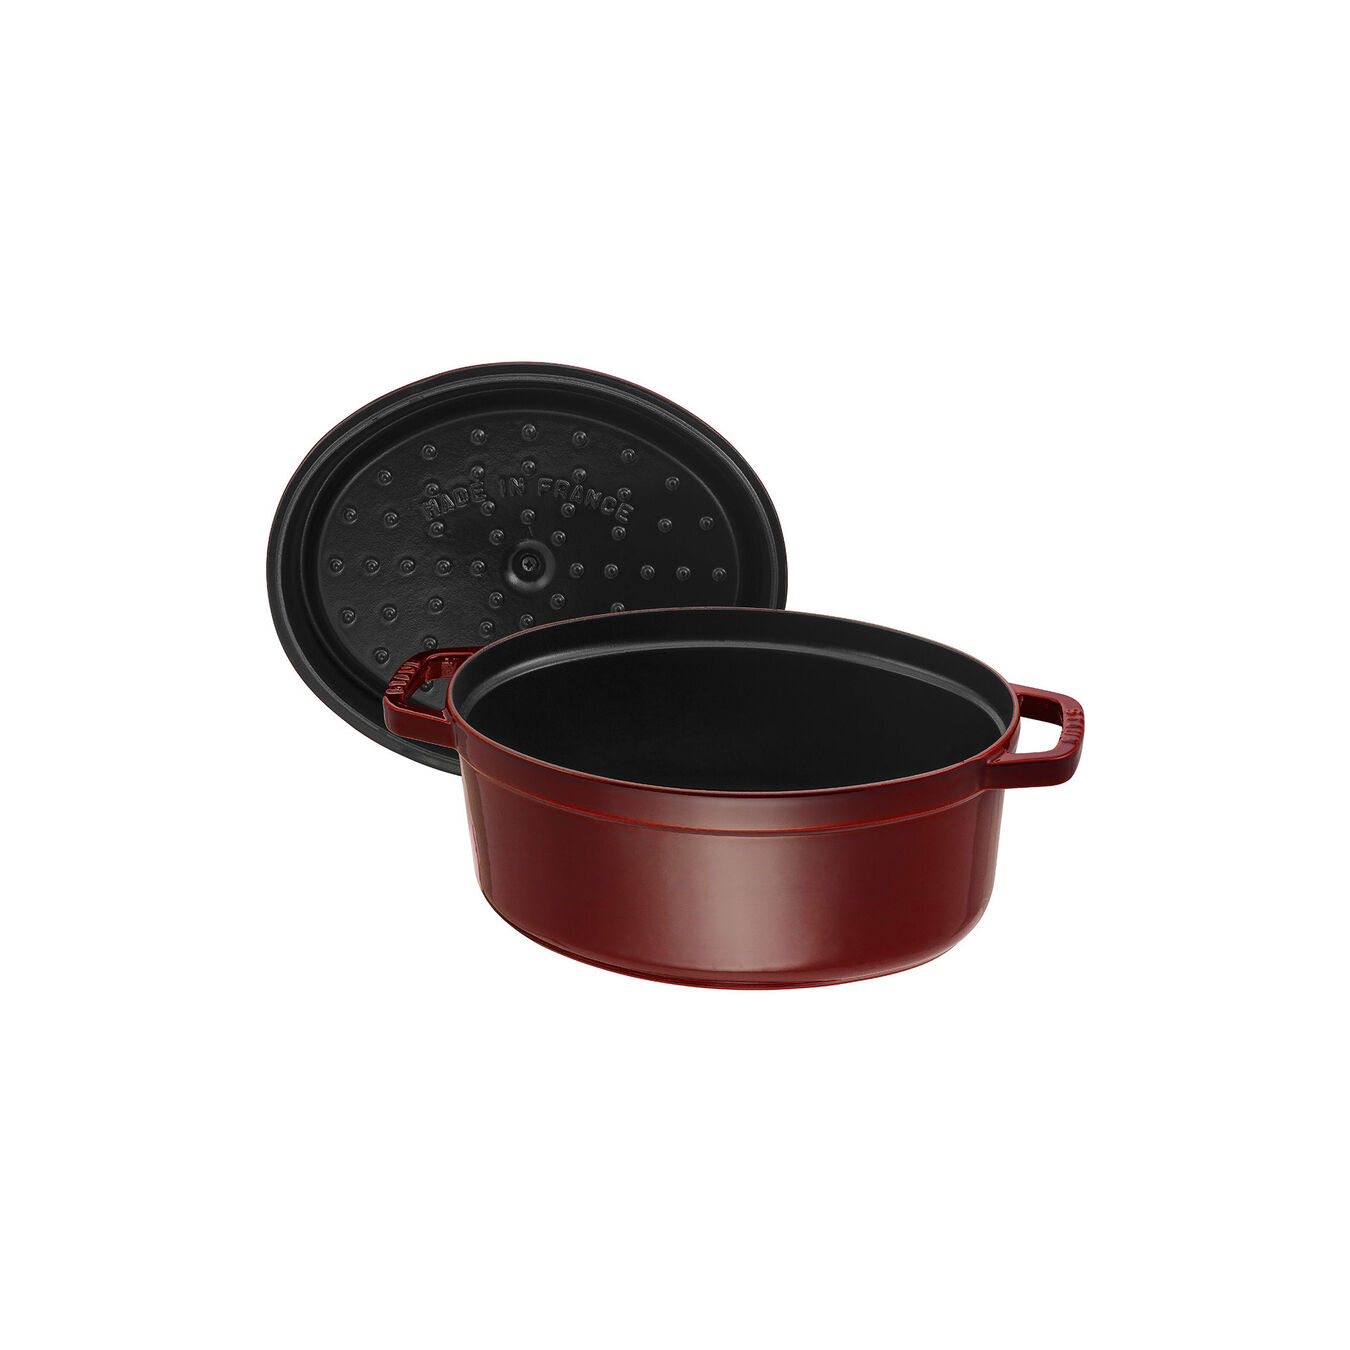 4.25 l Cast iron oval Cocotte, Grenadine-Red,,large 5